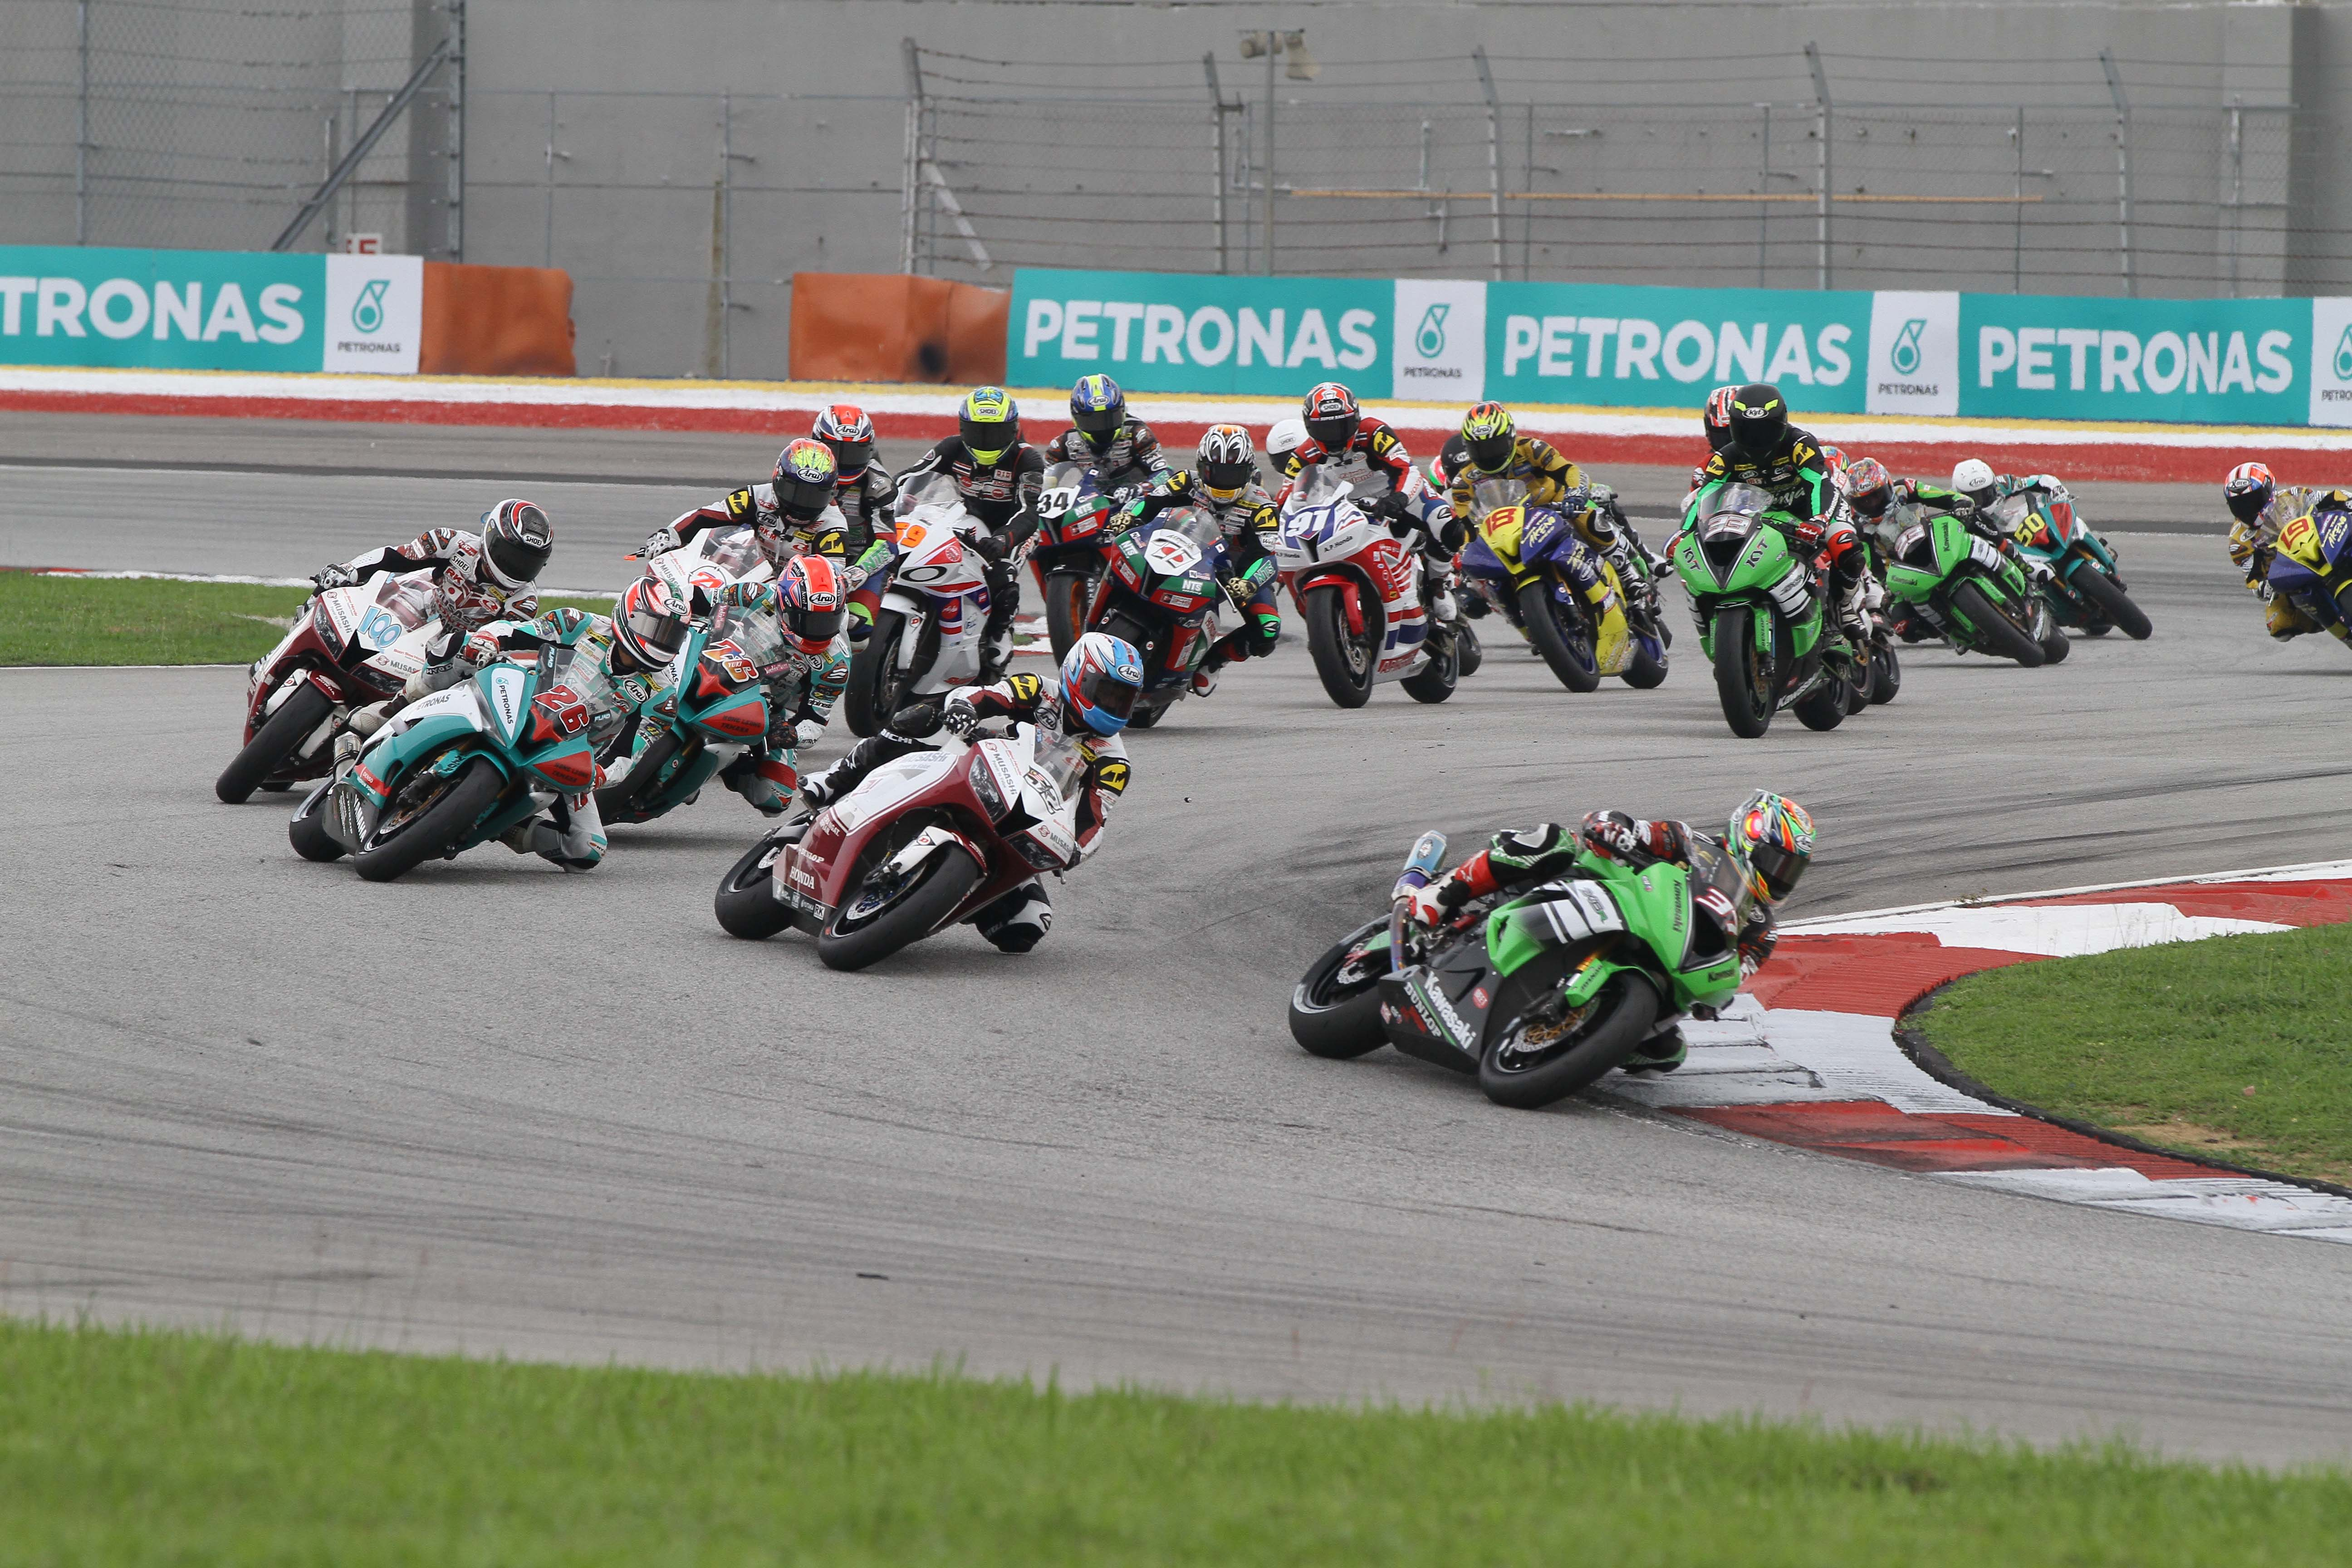 The 2015 ARRC contingent will gather at the Sepang Circuit from April 1-3 for the official pre-season test